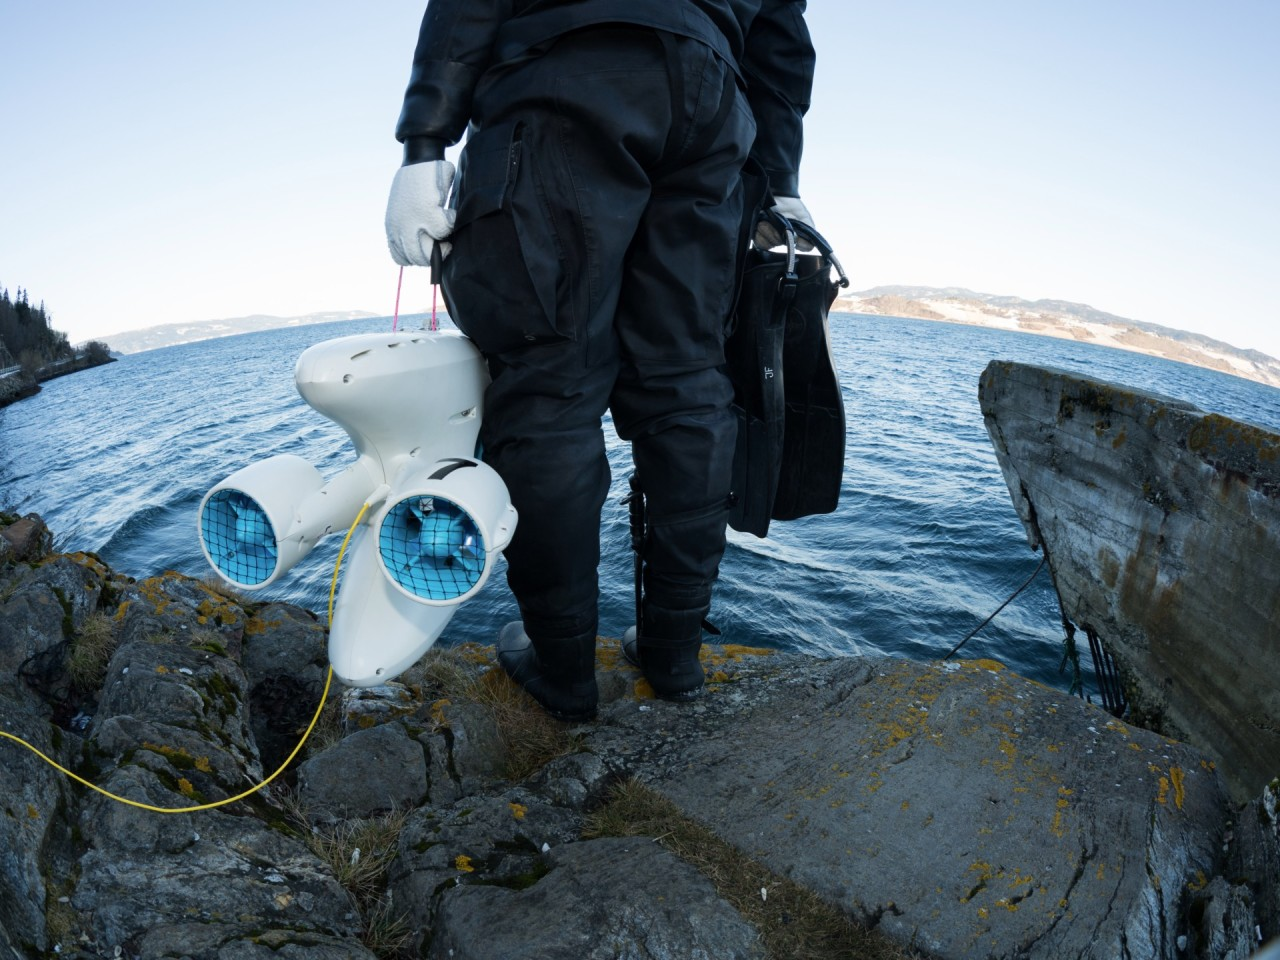 PioneerOne and scuba diver ready to explore the Trondheim fjord